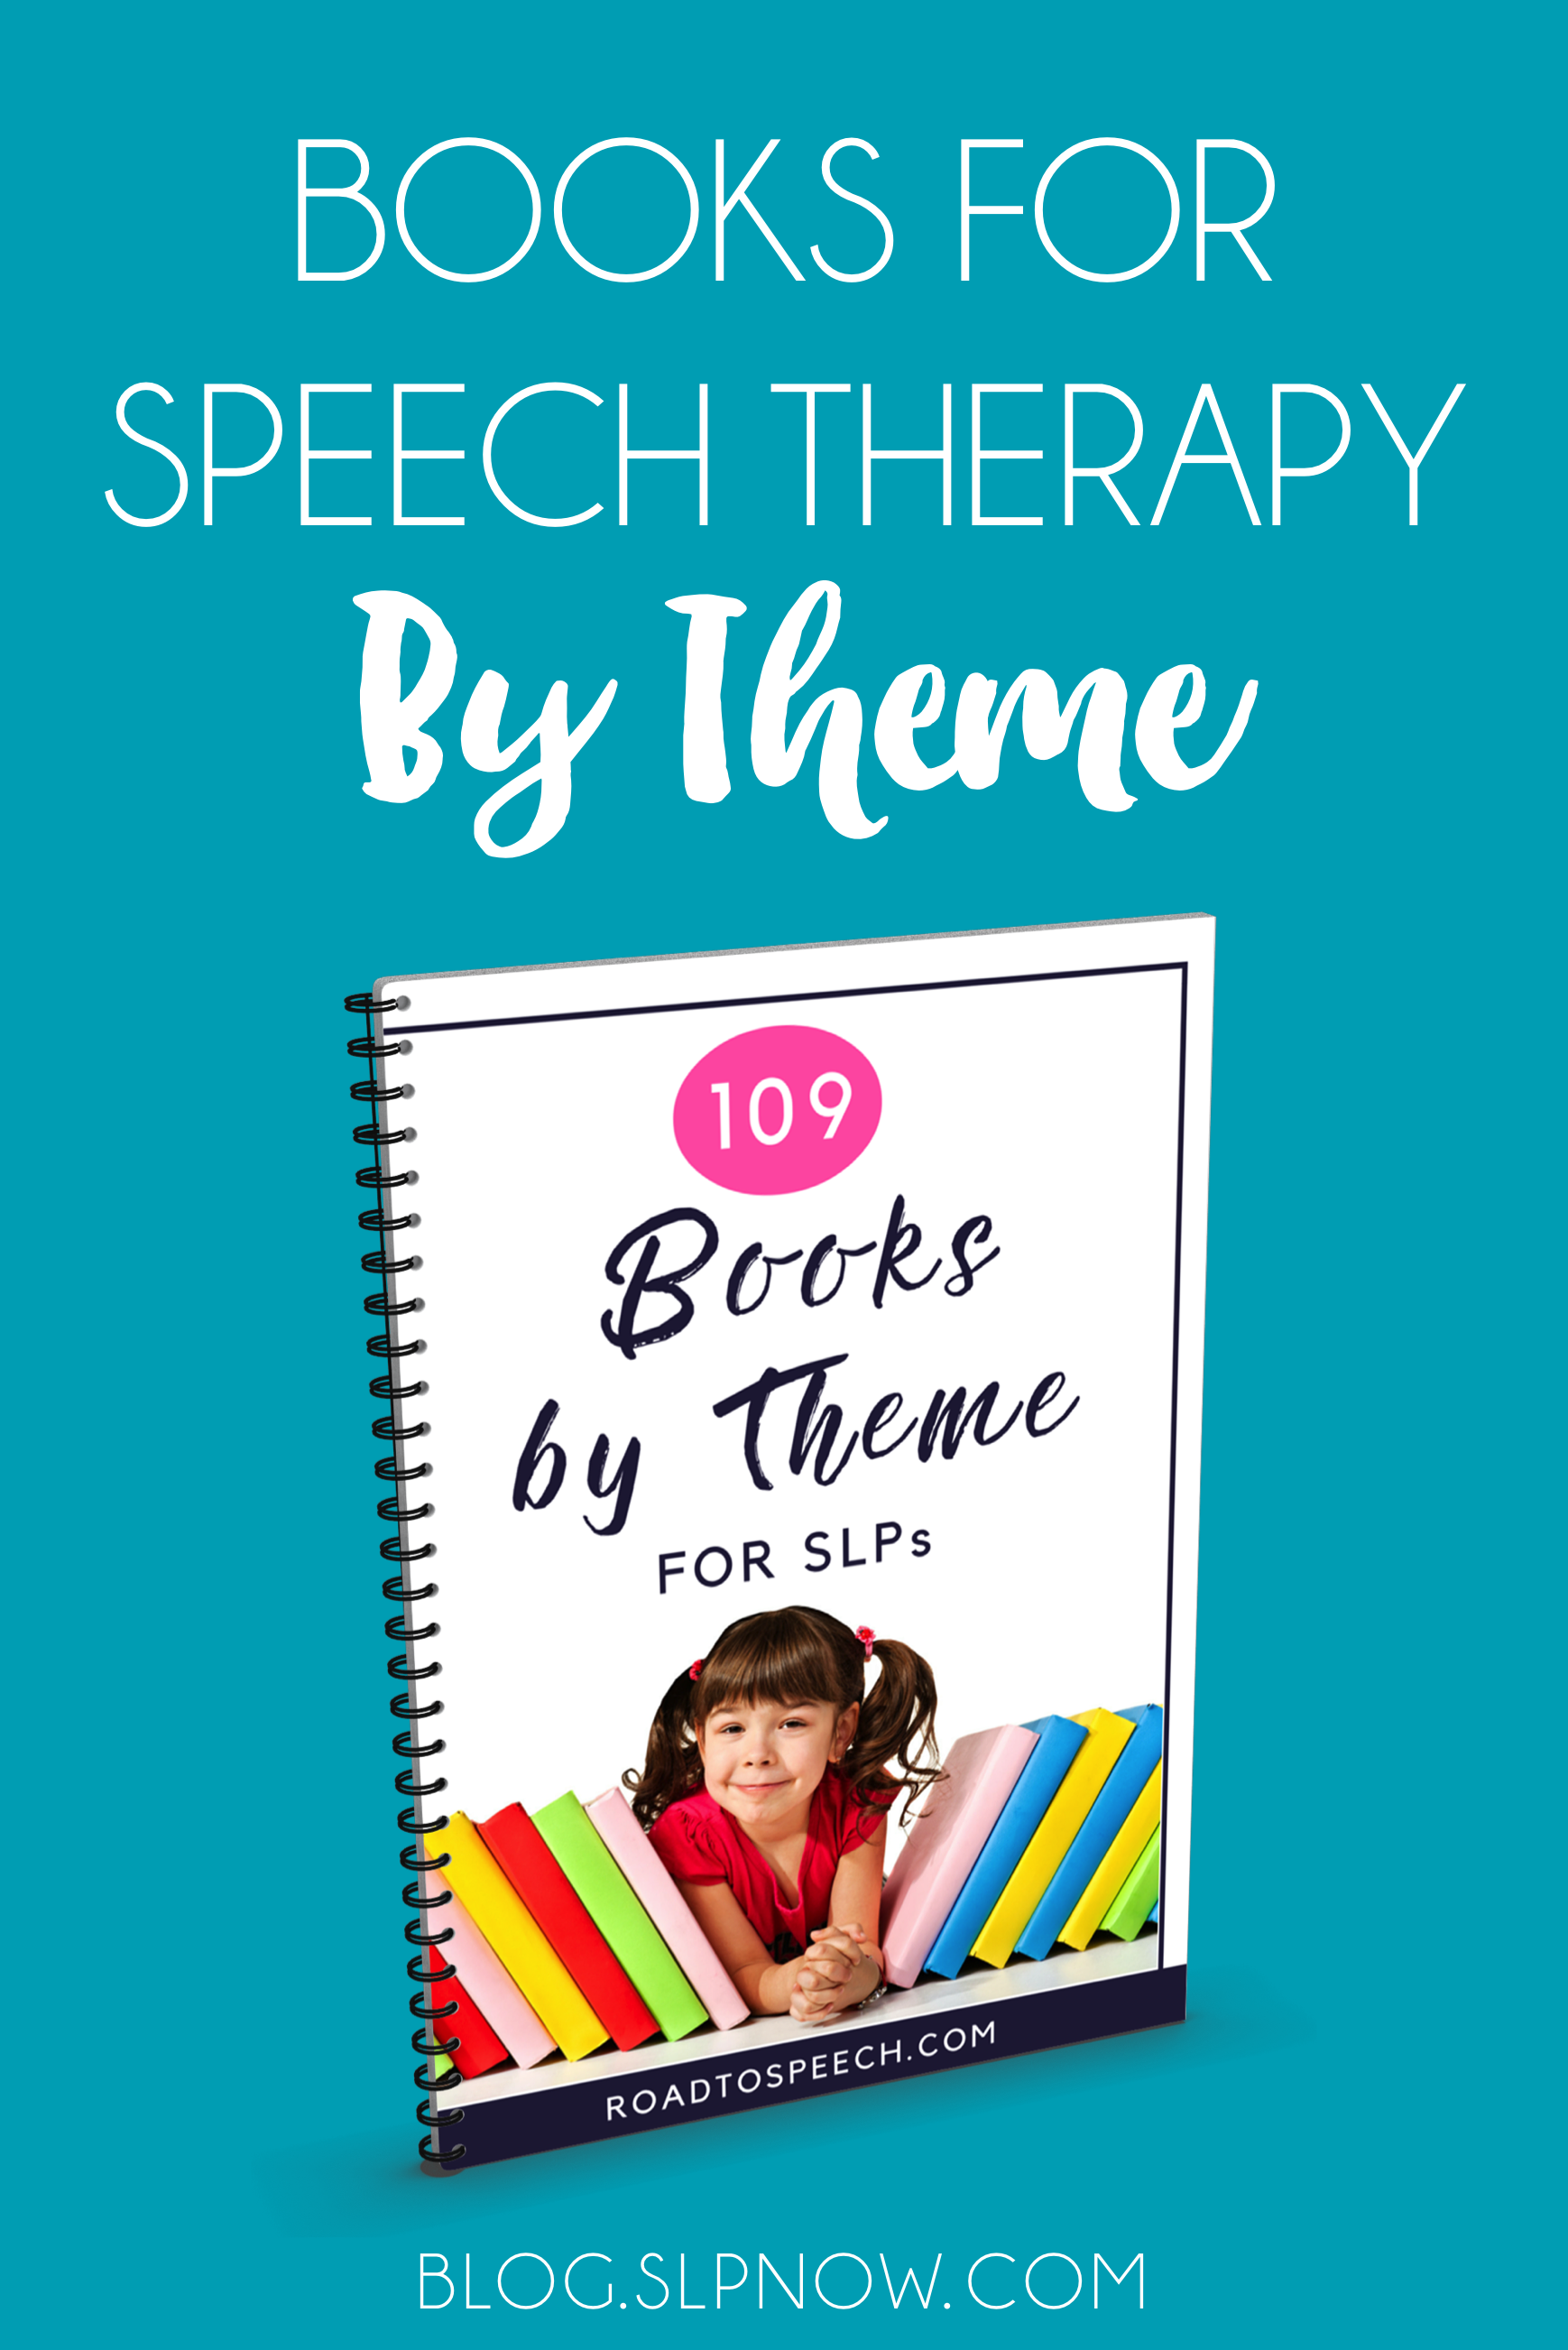 Are you looking for new books to add to your library in your therapy room? I've created a list of 109 recommended books, which I've sorted by theme. To find out what all is on this books by theme list, click through to this blog post!